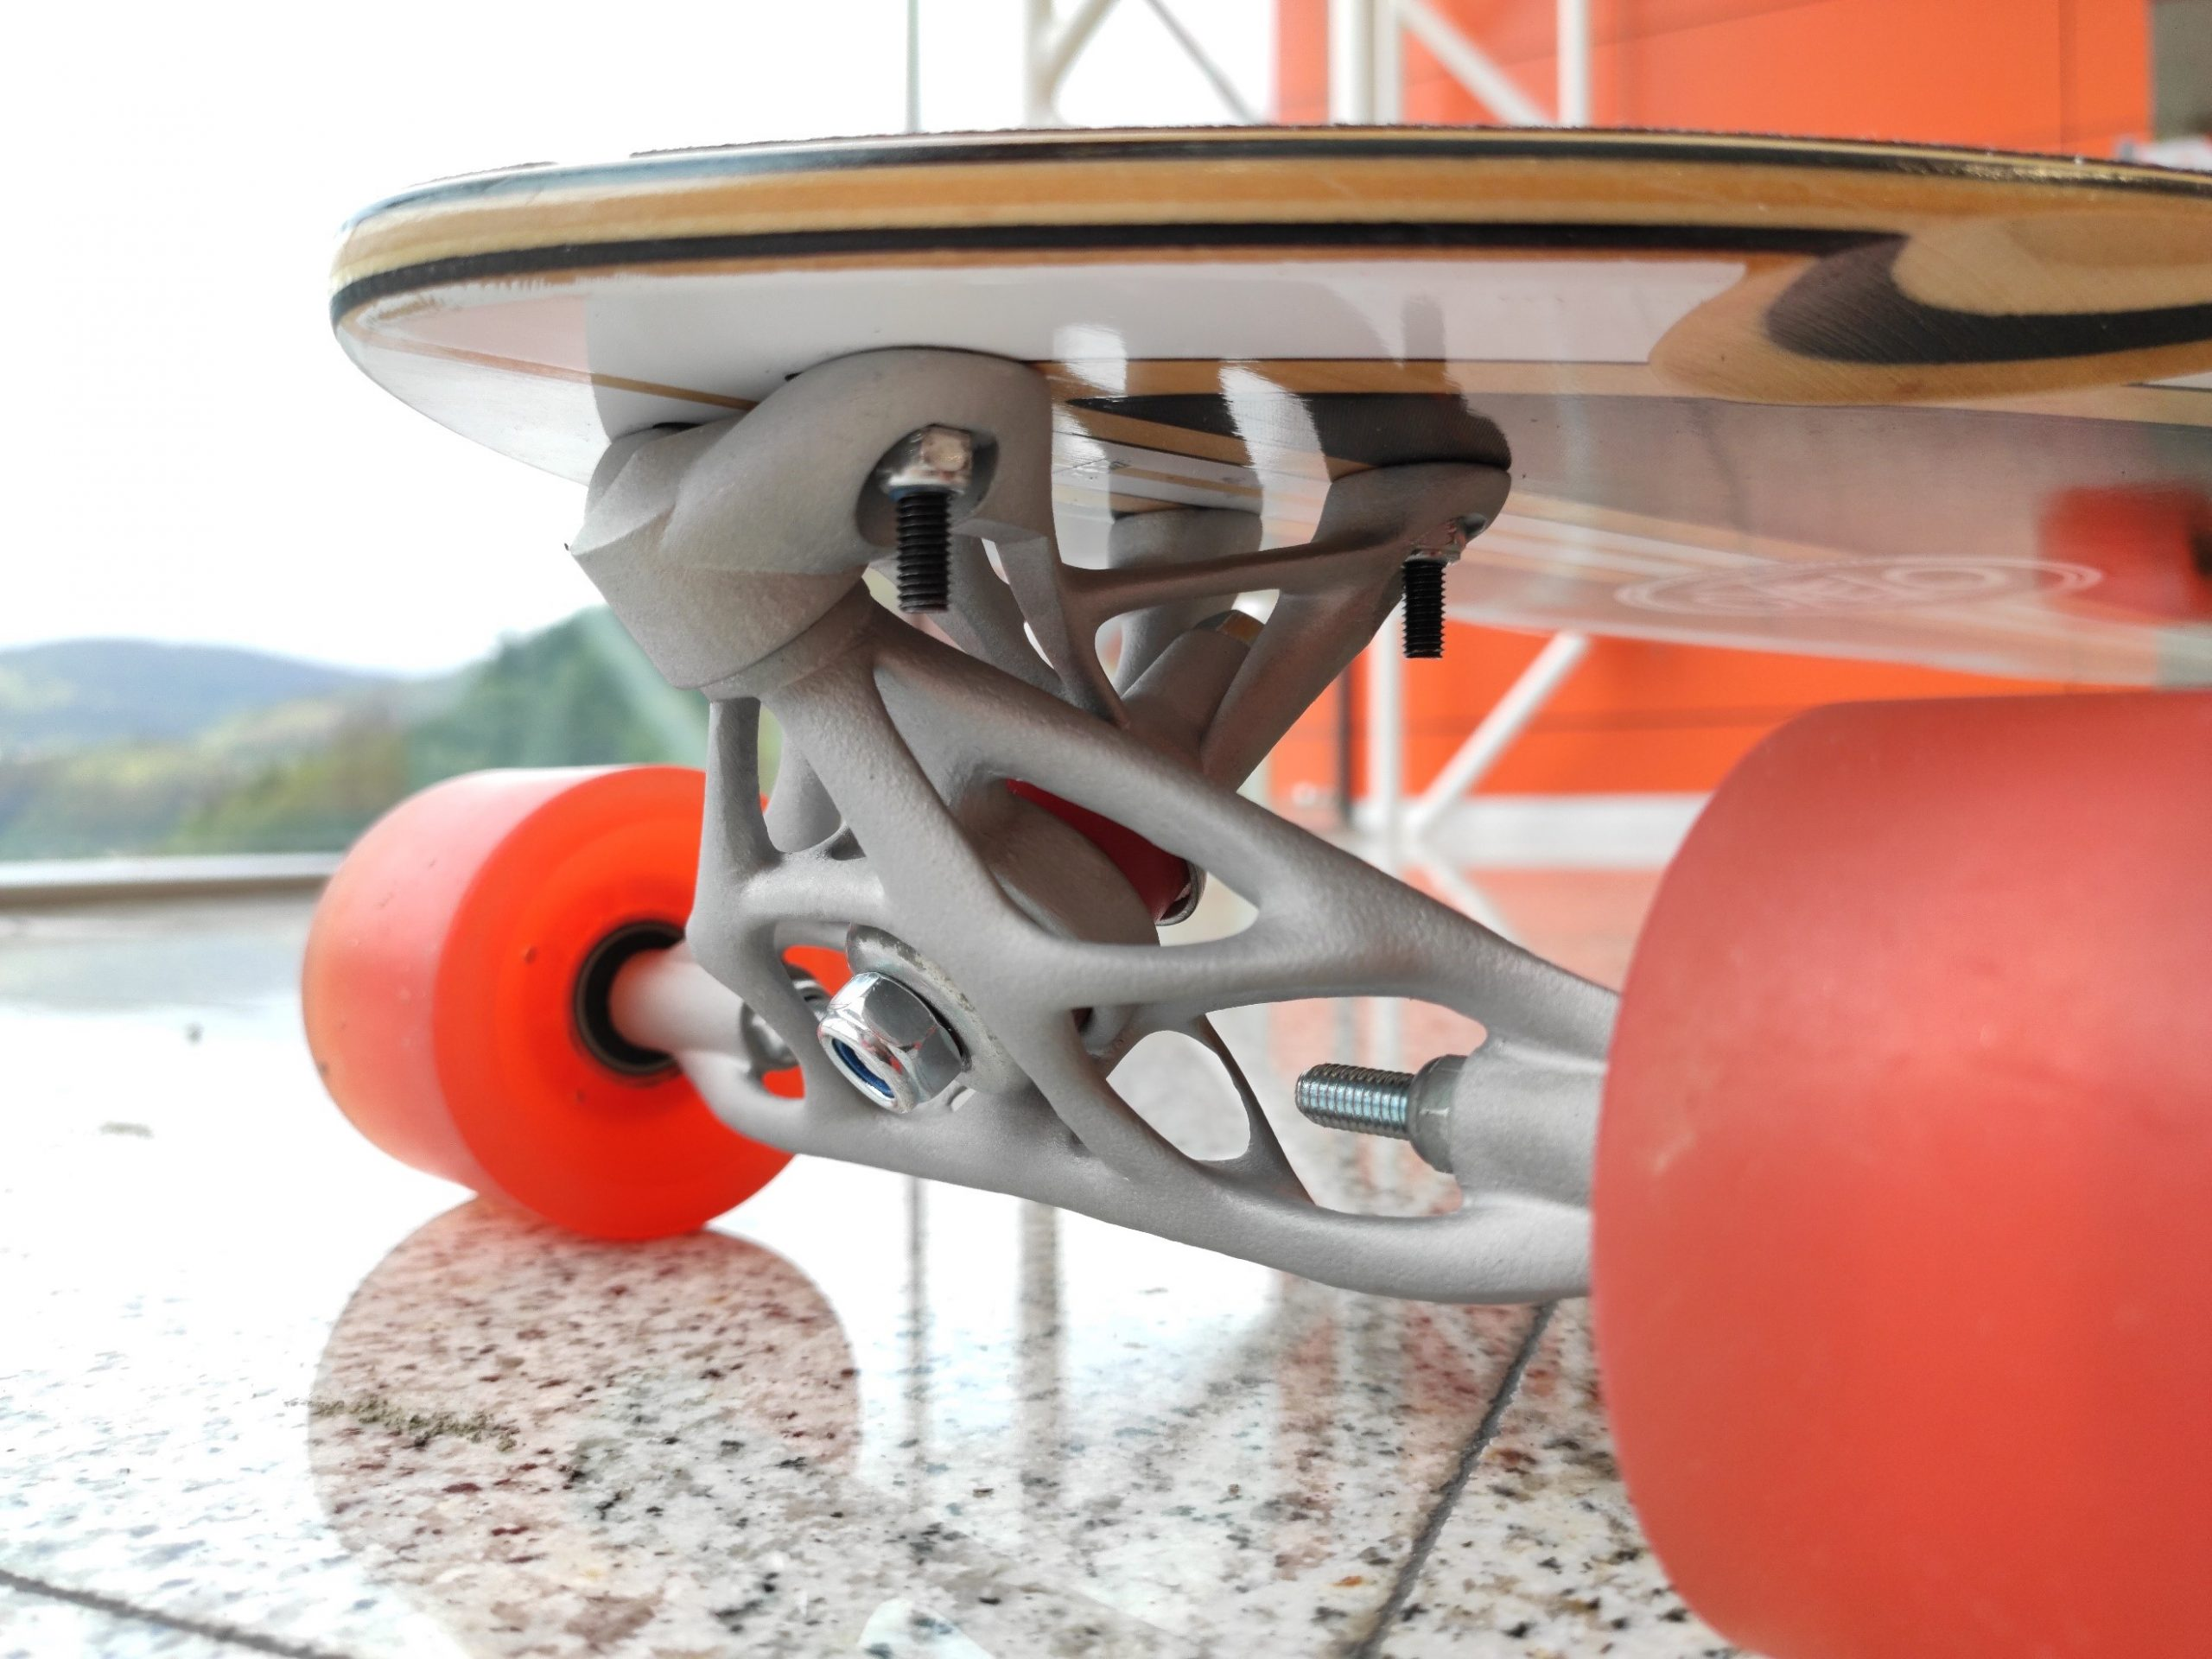 Optimized Skate-truck Design for Additive Manufacturing with Altair Inspire